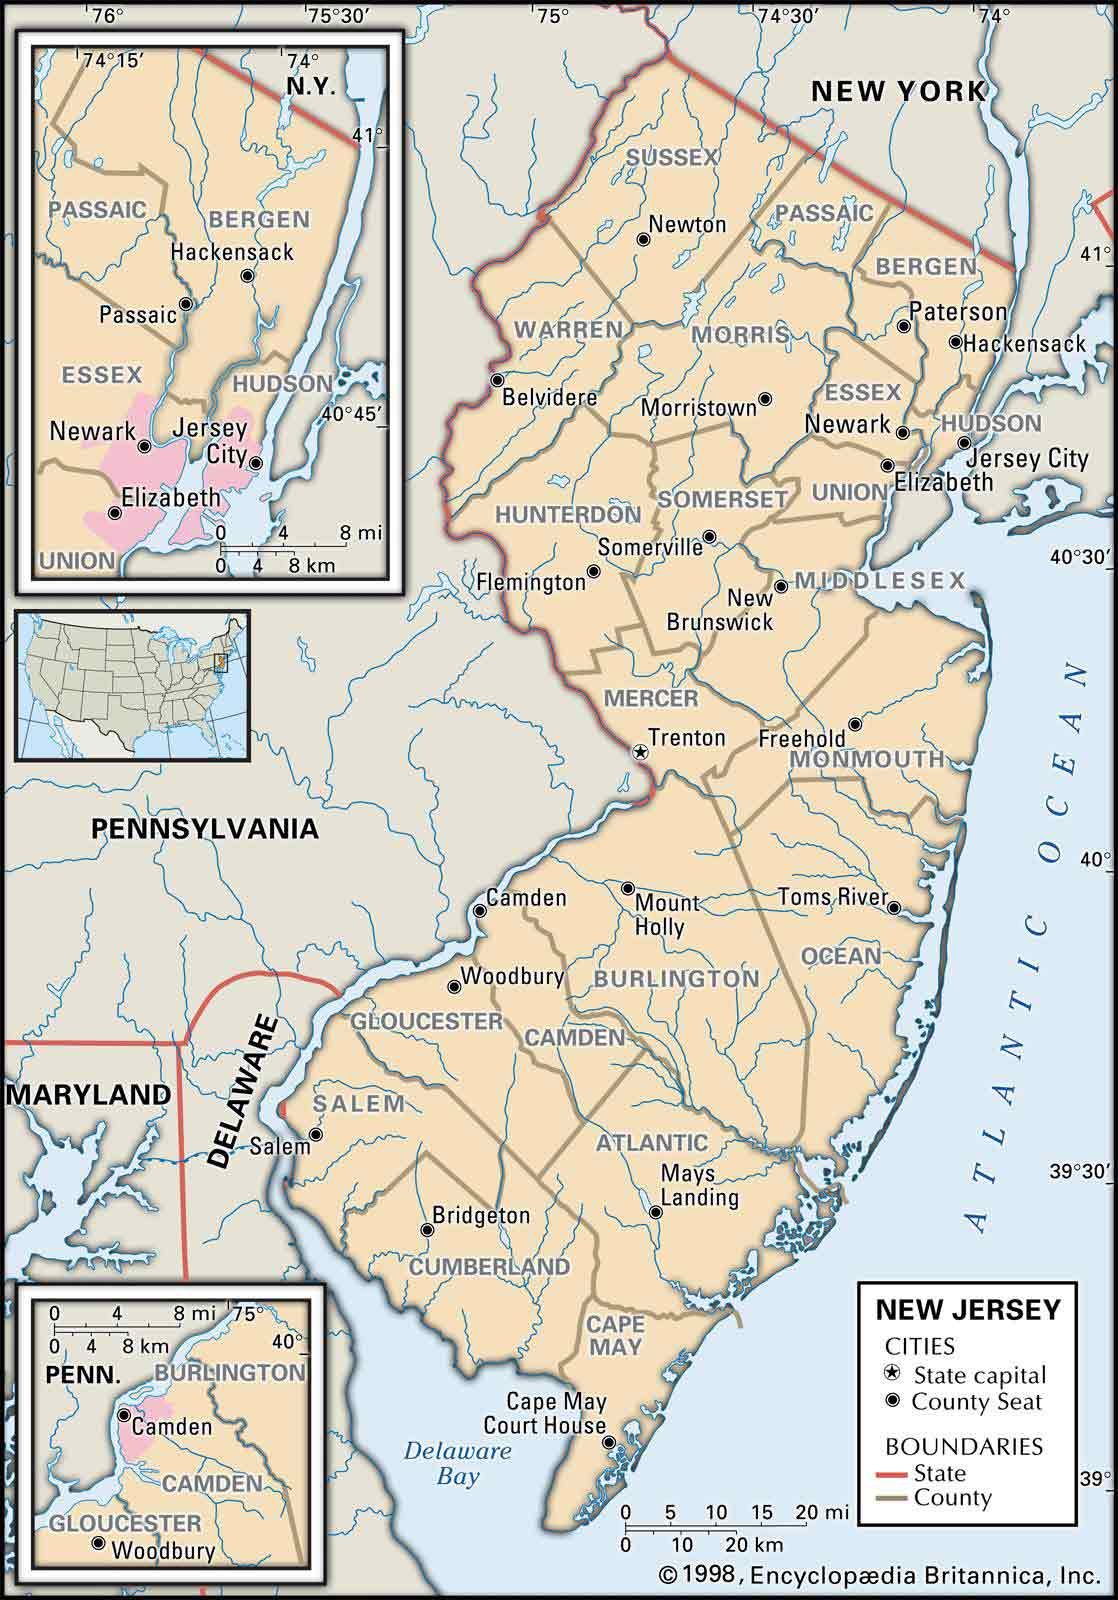 Maps Of Monmouth County Nj : monmouth, county, Historical, City,, County, State, Jersey